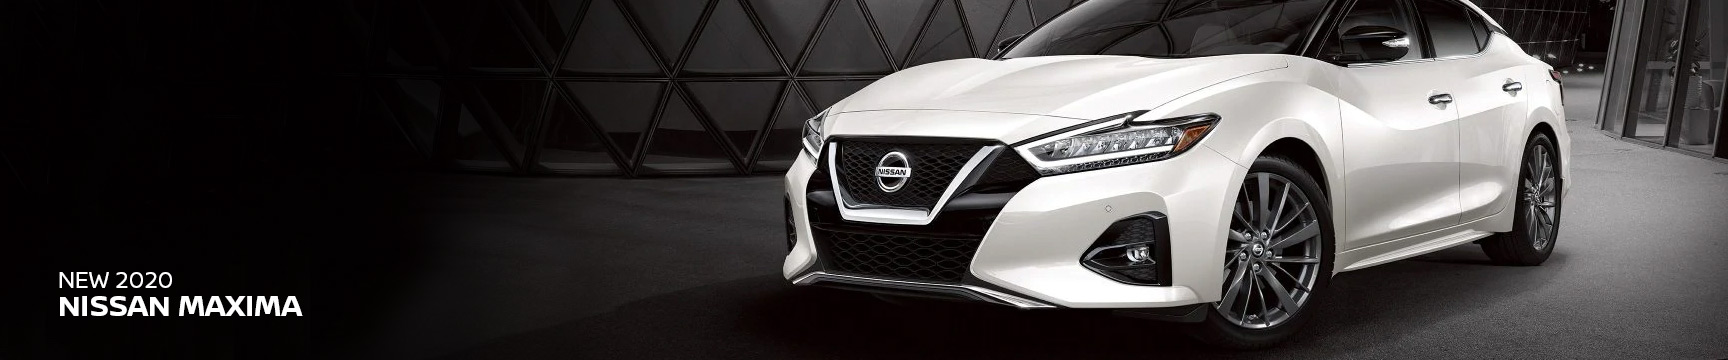 2020 Nissan Maxima Sedans in Buford, Georgia, near Atlanta